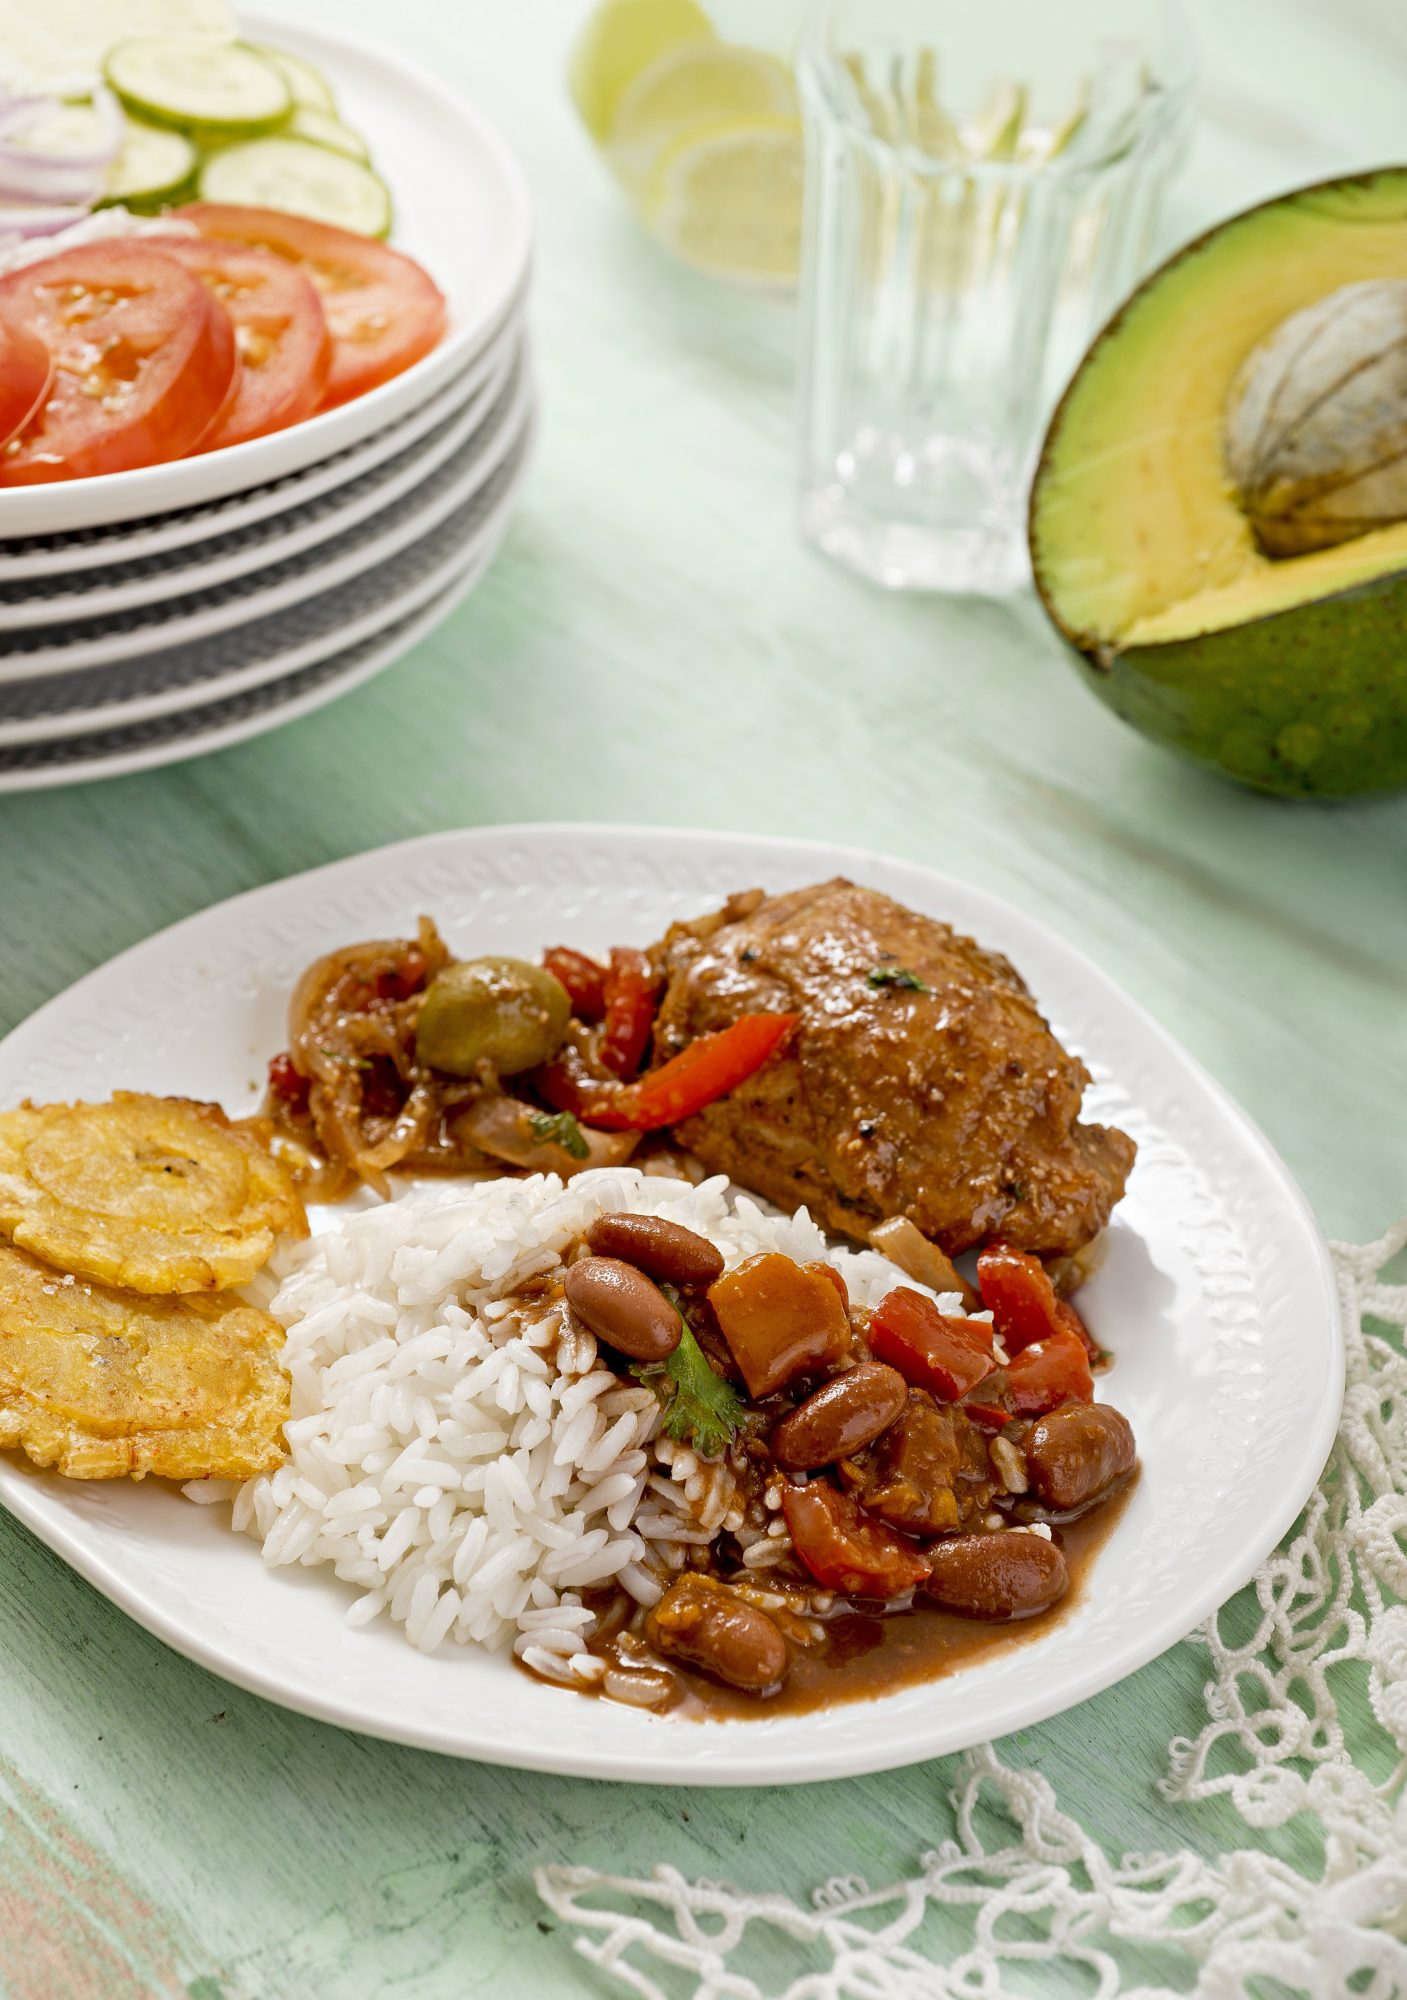 Braised chicken with beans, rice and tostones (Dominican Republic) - Saborealo - December 2020/January 2020